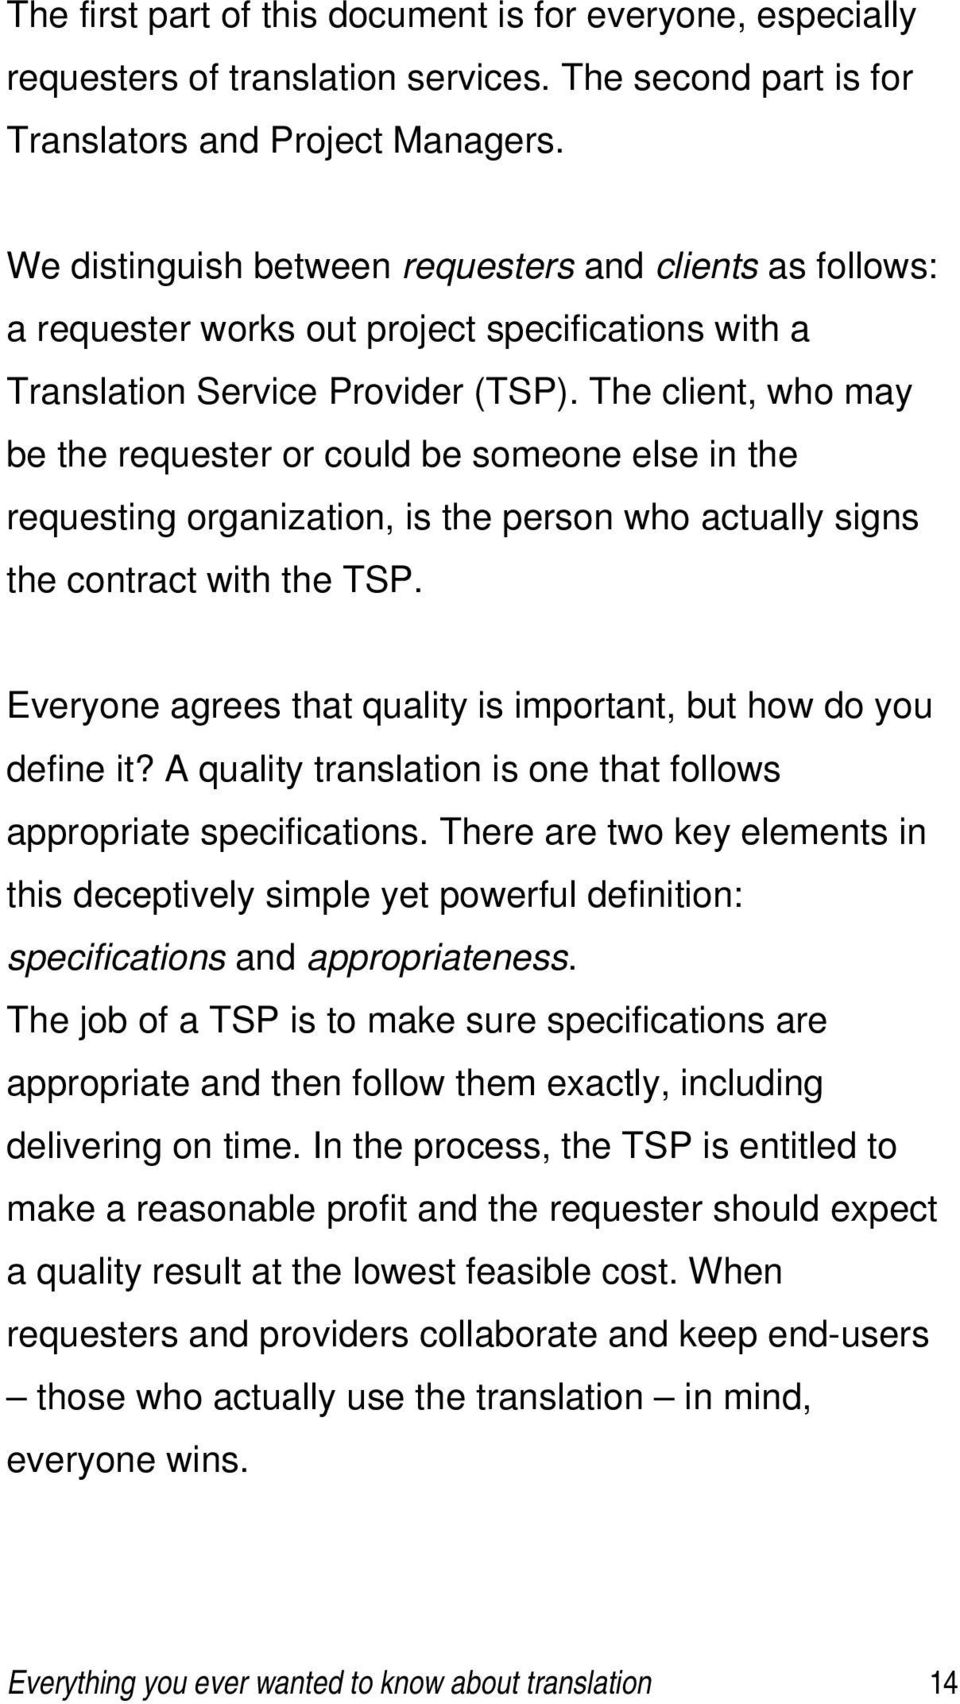 The client, who may be the requester or could be someone else in the requesting organization, is the person who actually signs the contract with the TSP.